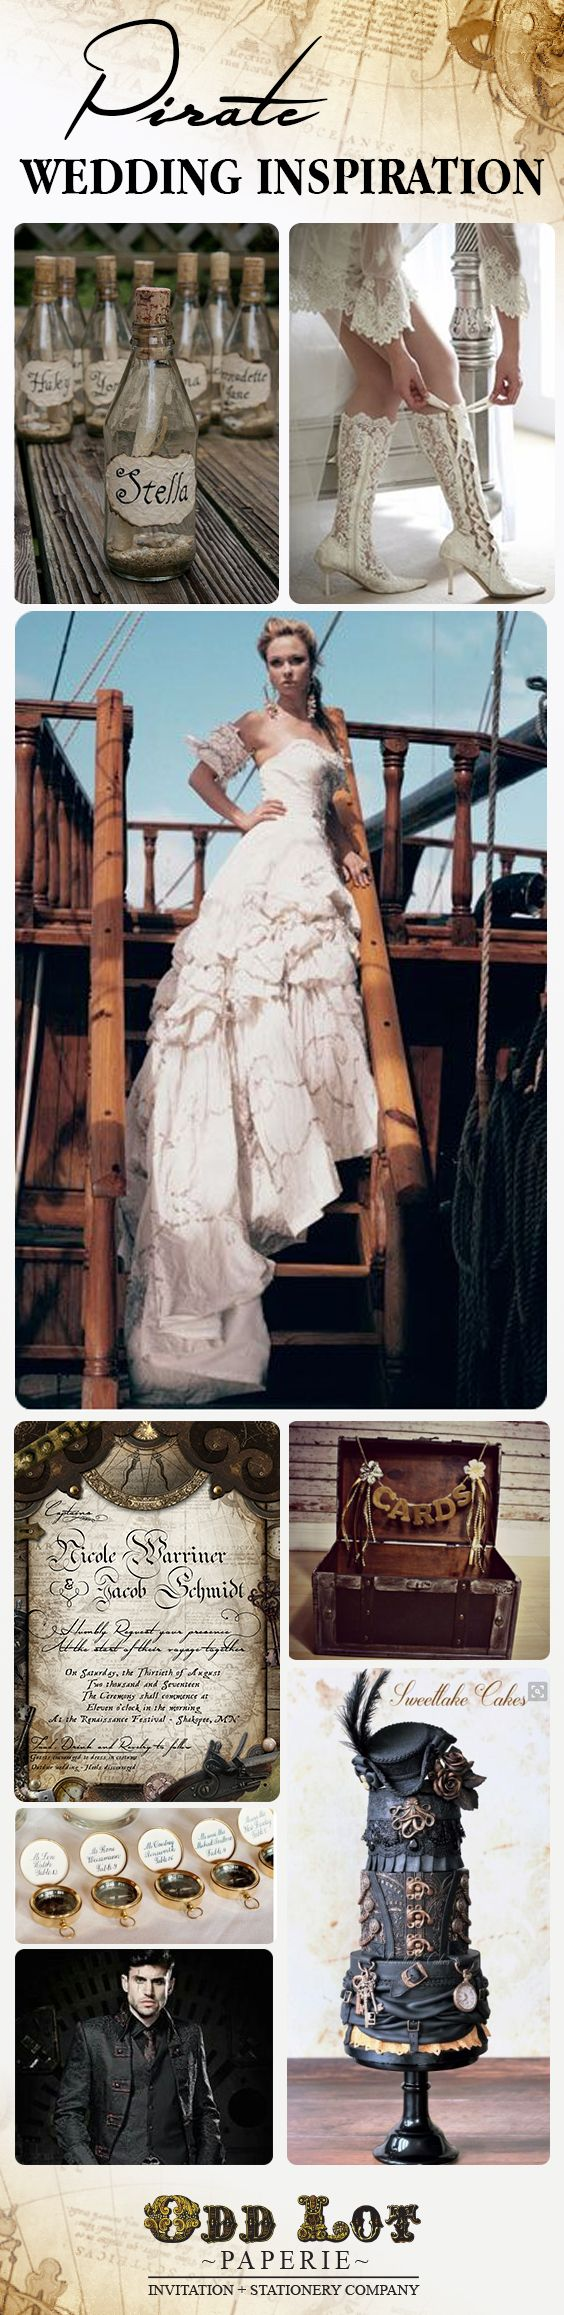 Stunning pirate themed wedding inspiration to pull of the perfect nautical pirate wedding ever!